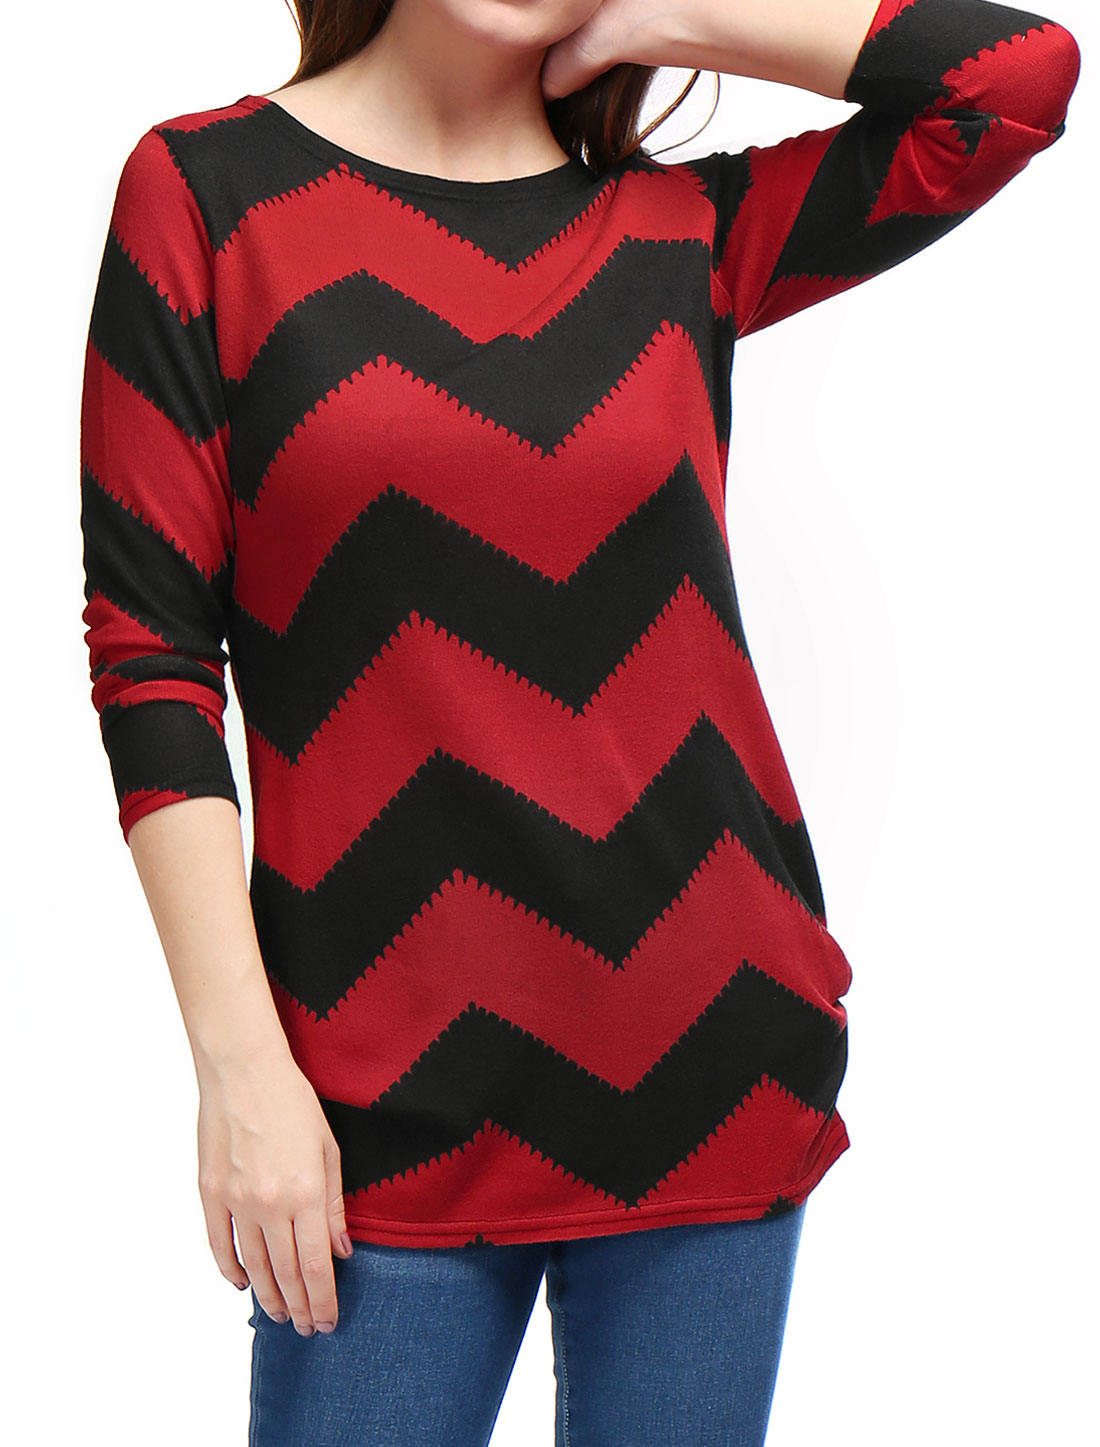 Woman Zig-Zag Pattern Knitted Relax Fit Tunic Top Black Red S